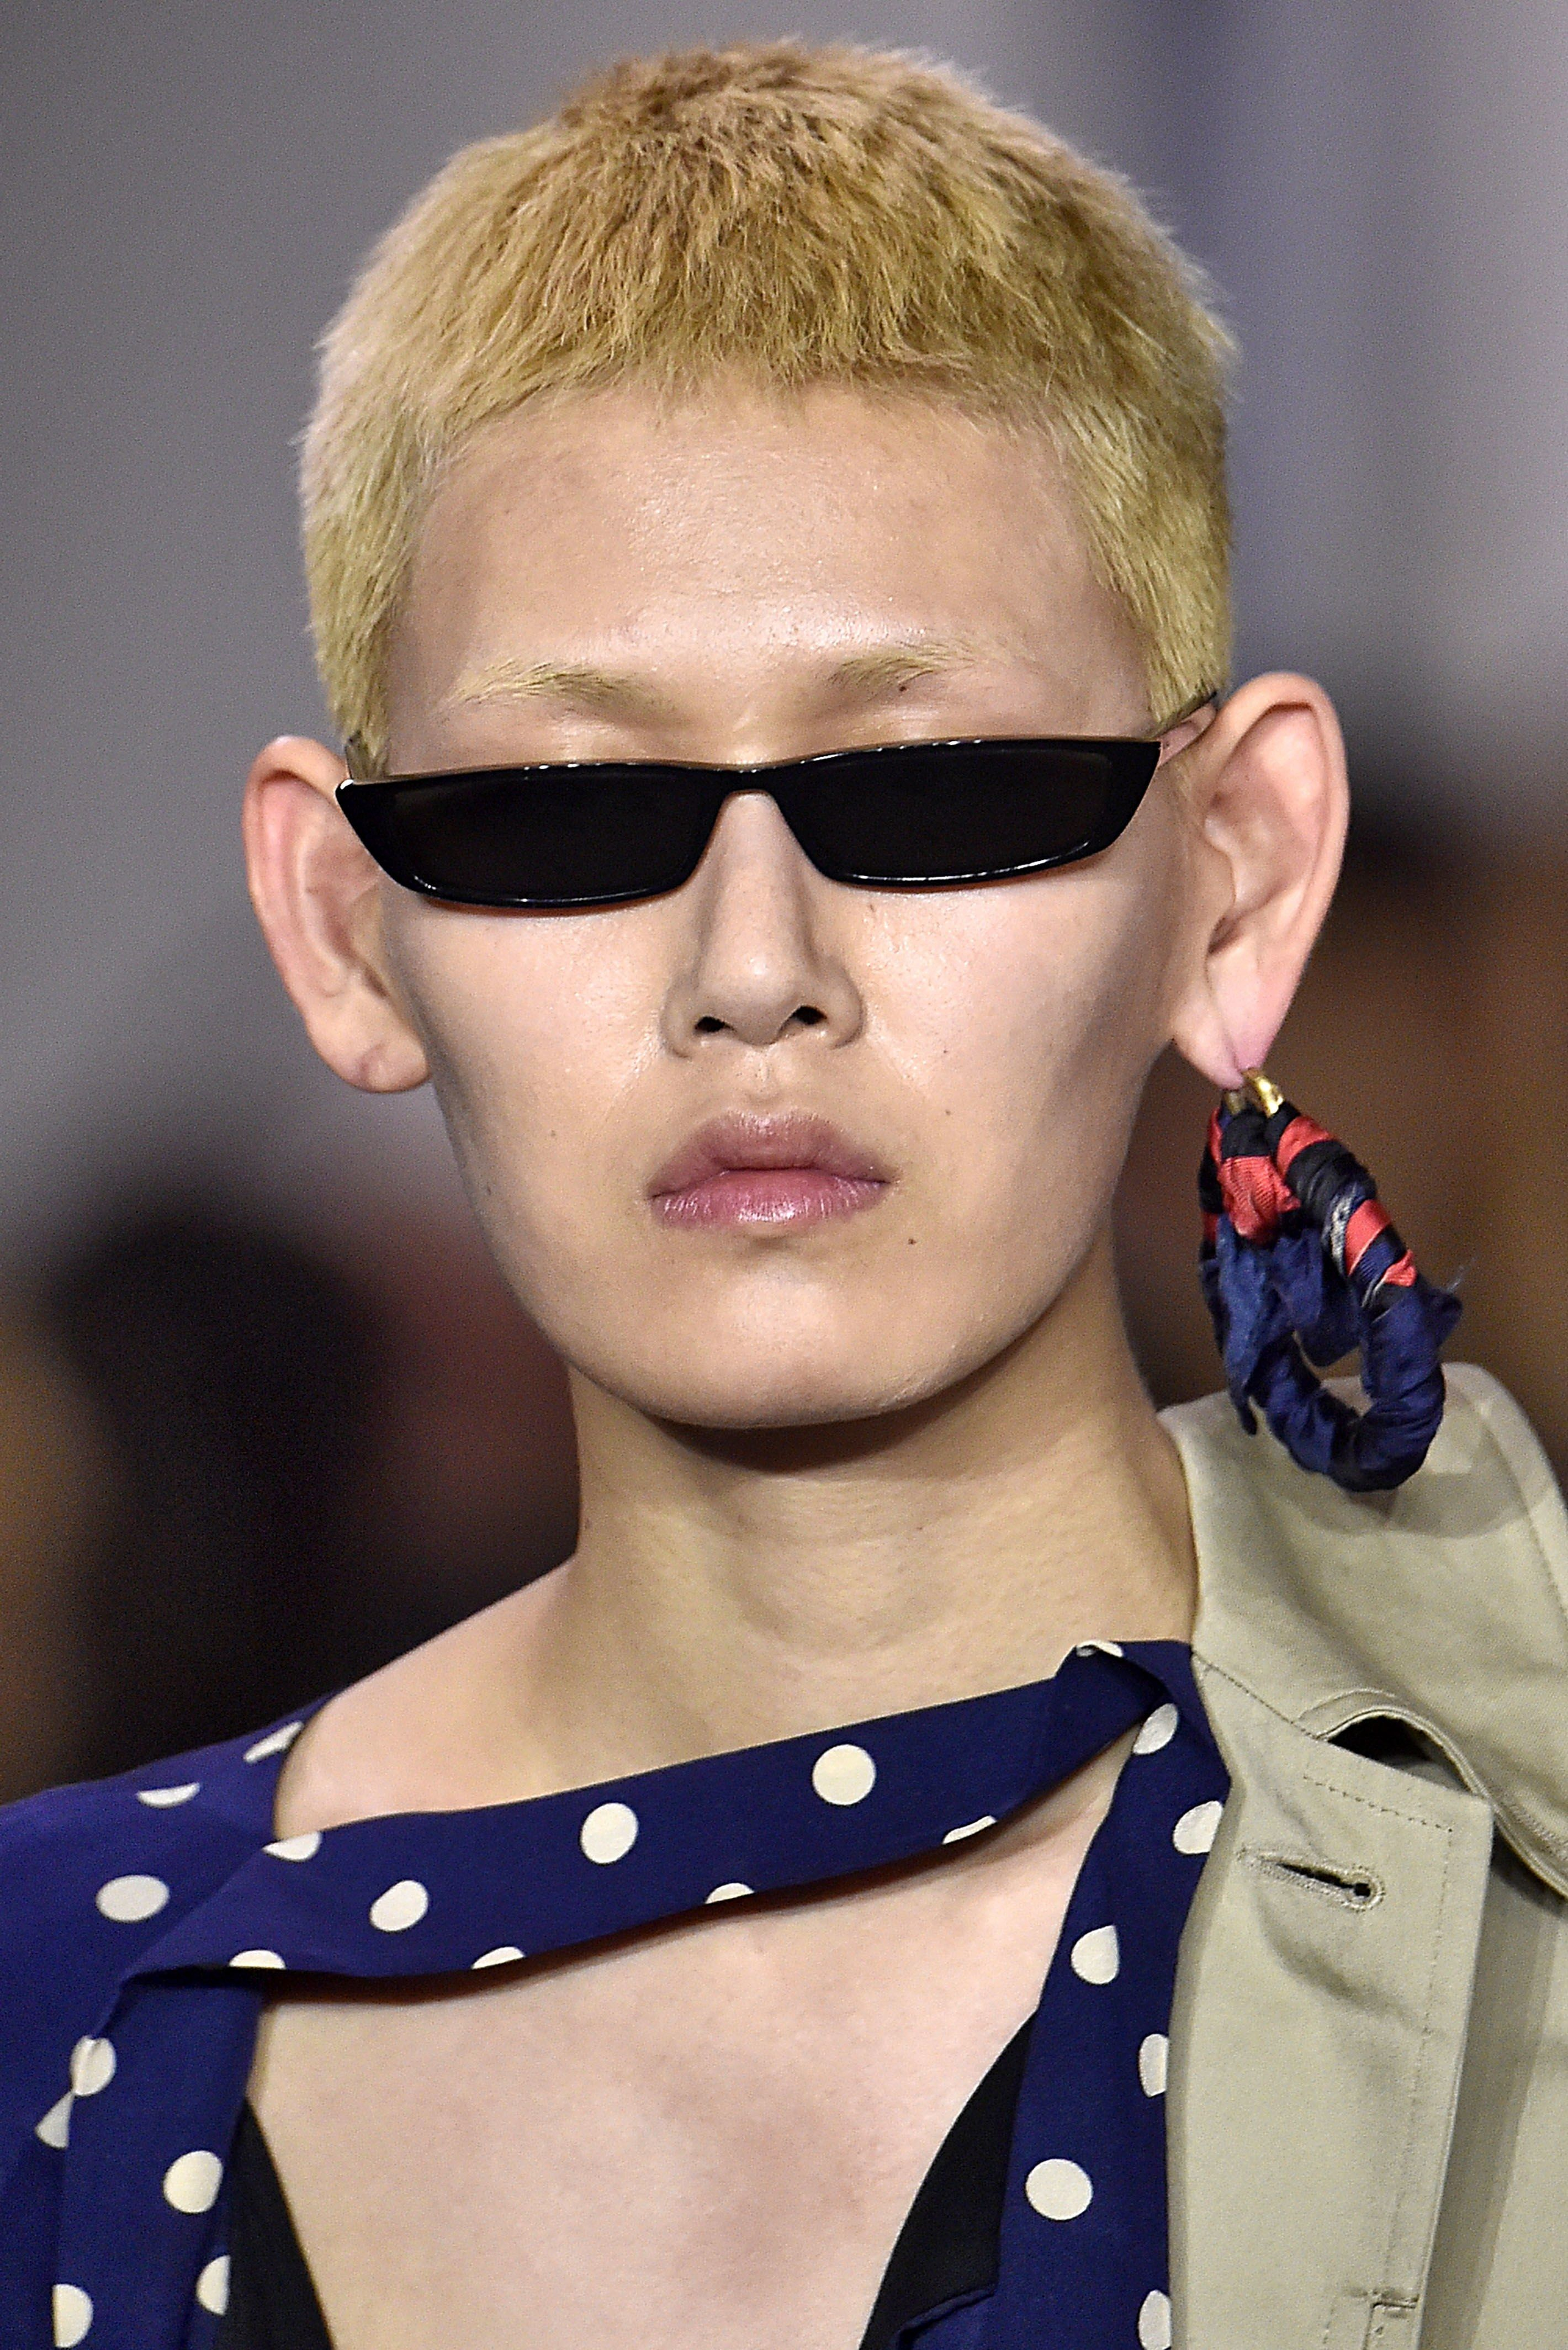 cab3028154c Hot Trend Alert  Your Sunglasses Should Barely Cover Your Eyeballs This  Summer Photos